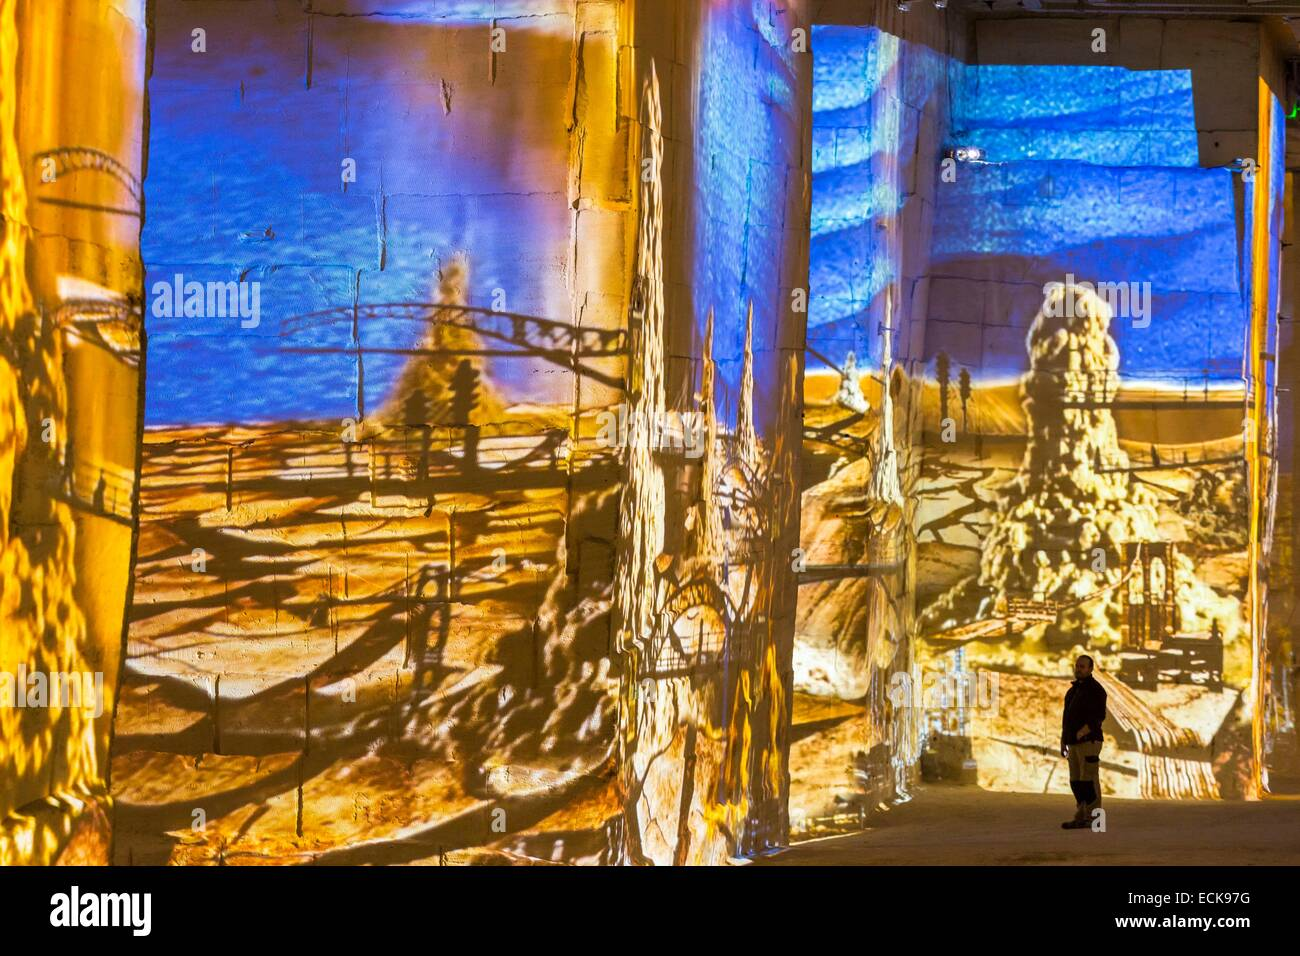 France, Bouches du Rhone, Les Baux de Provence, Careers Light show Gianfranco Iannuzzi, the invisisbles cities - Stock Image